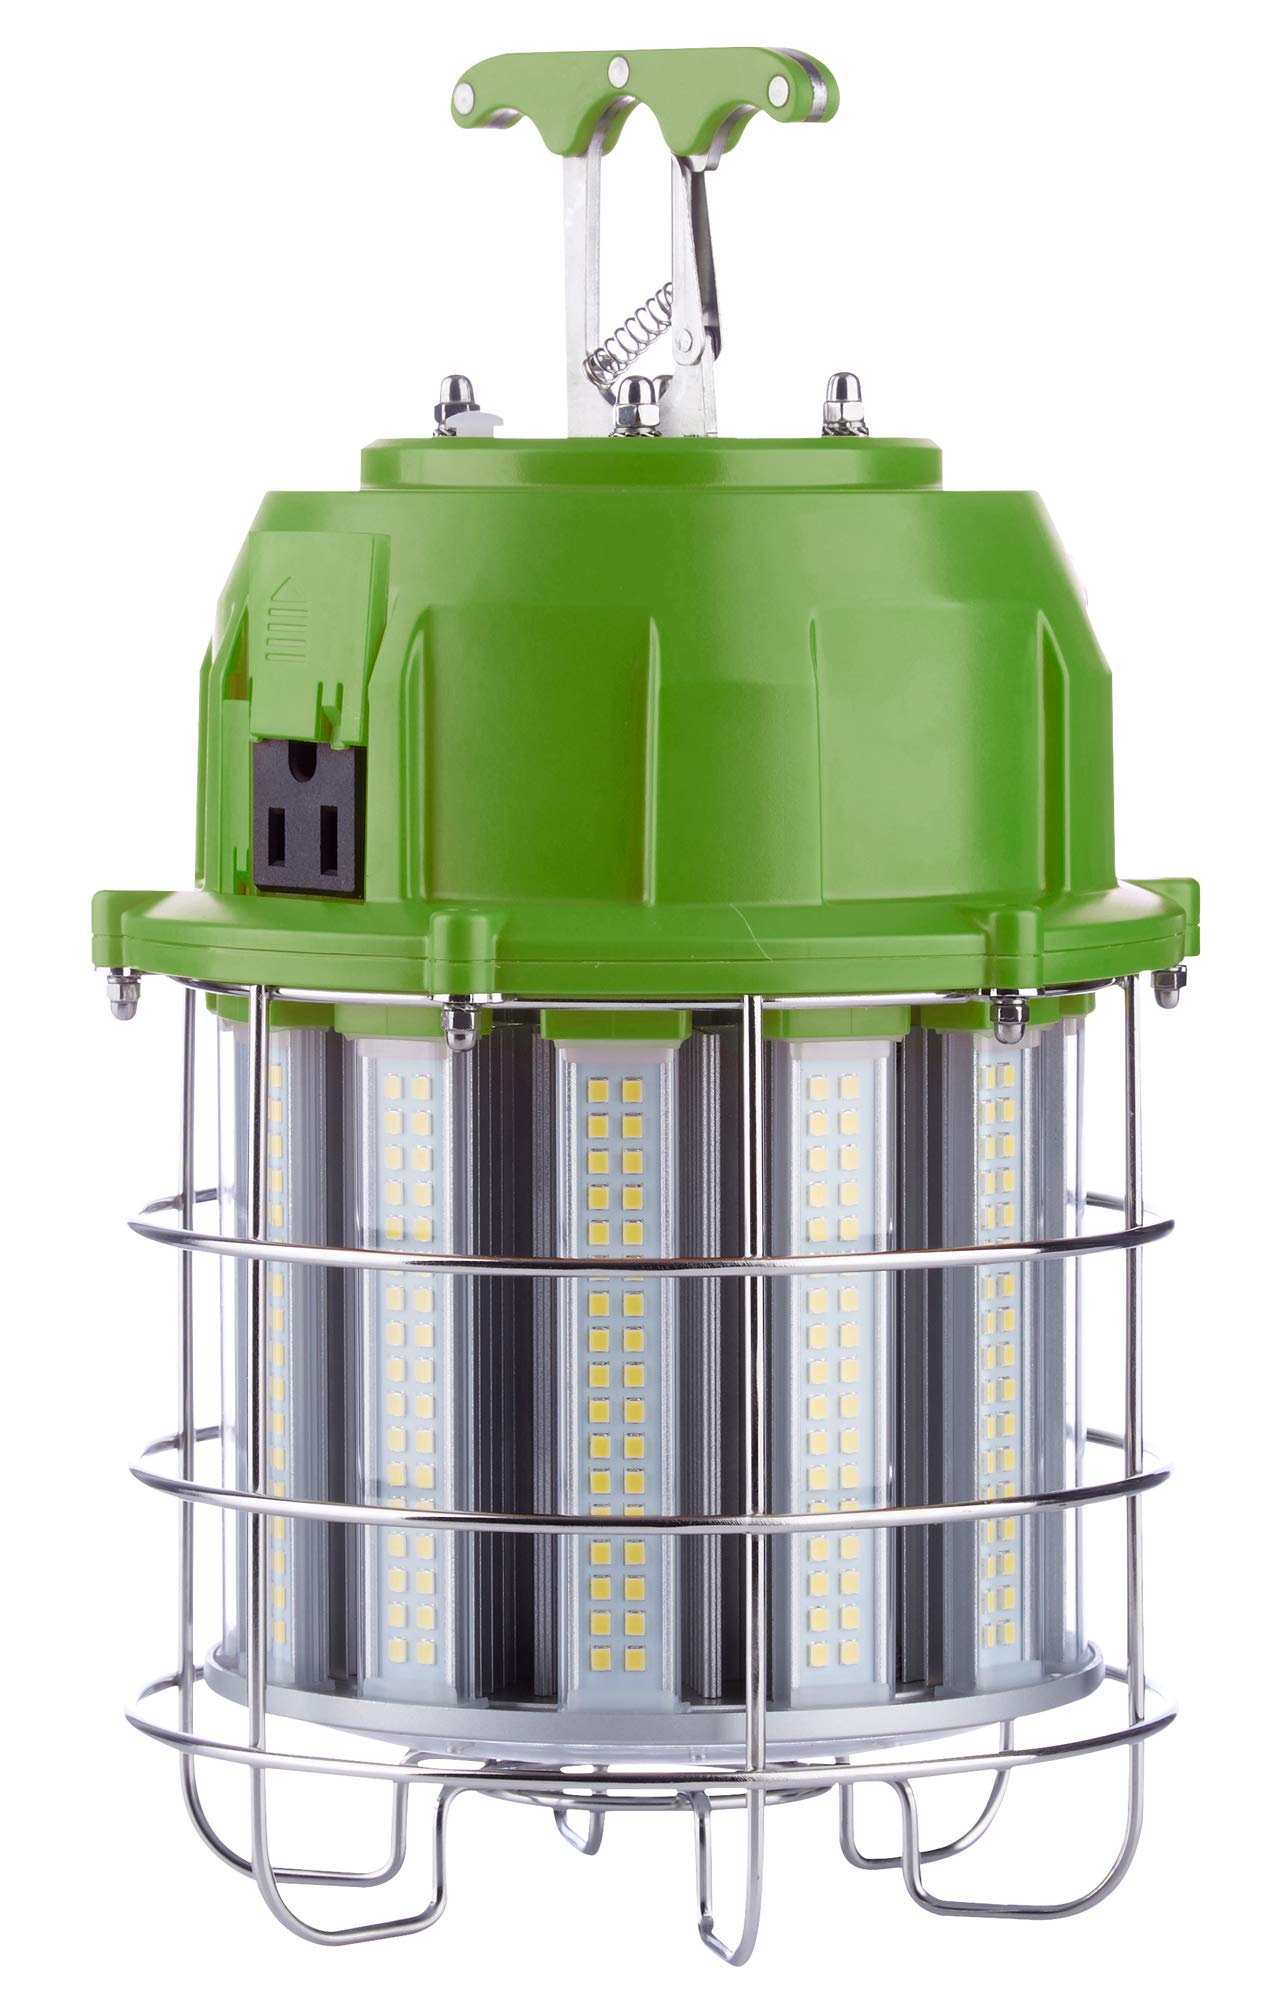 PowerSmith PTLK52-100 New 12,000 Lumen High Bay Temporary LED Daisy Chain Hanging Work Light with Metal Clasp and 10 ft Power Cord Medium Green by POWERSMITH (Image #1)